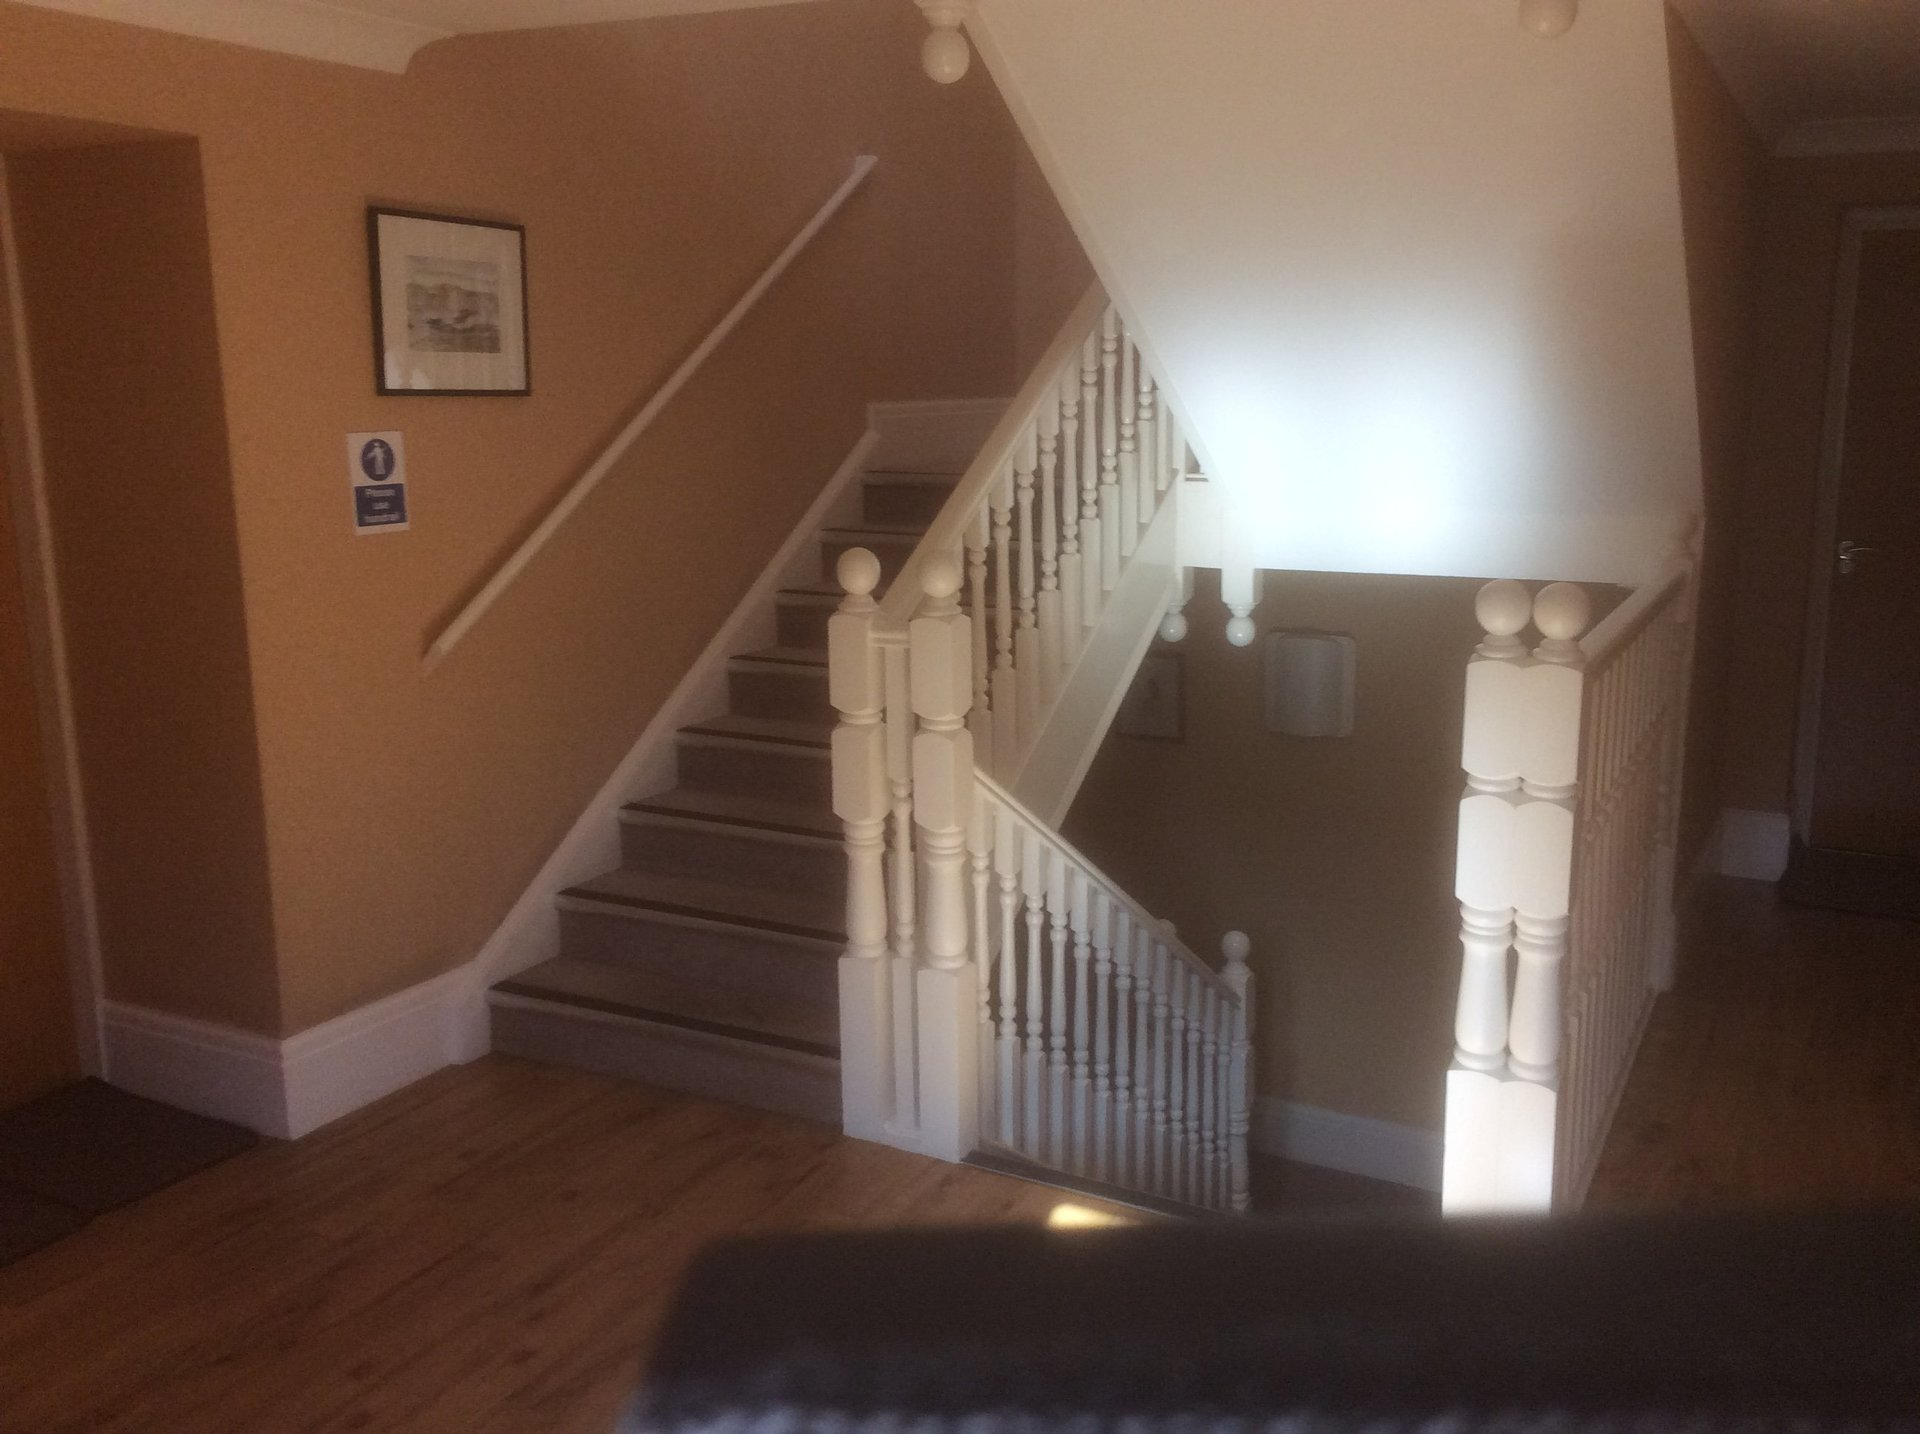 image of the stair case